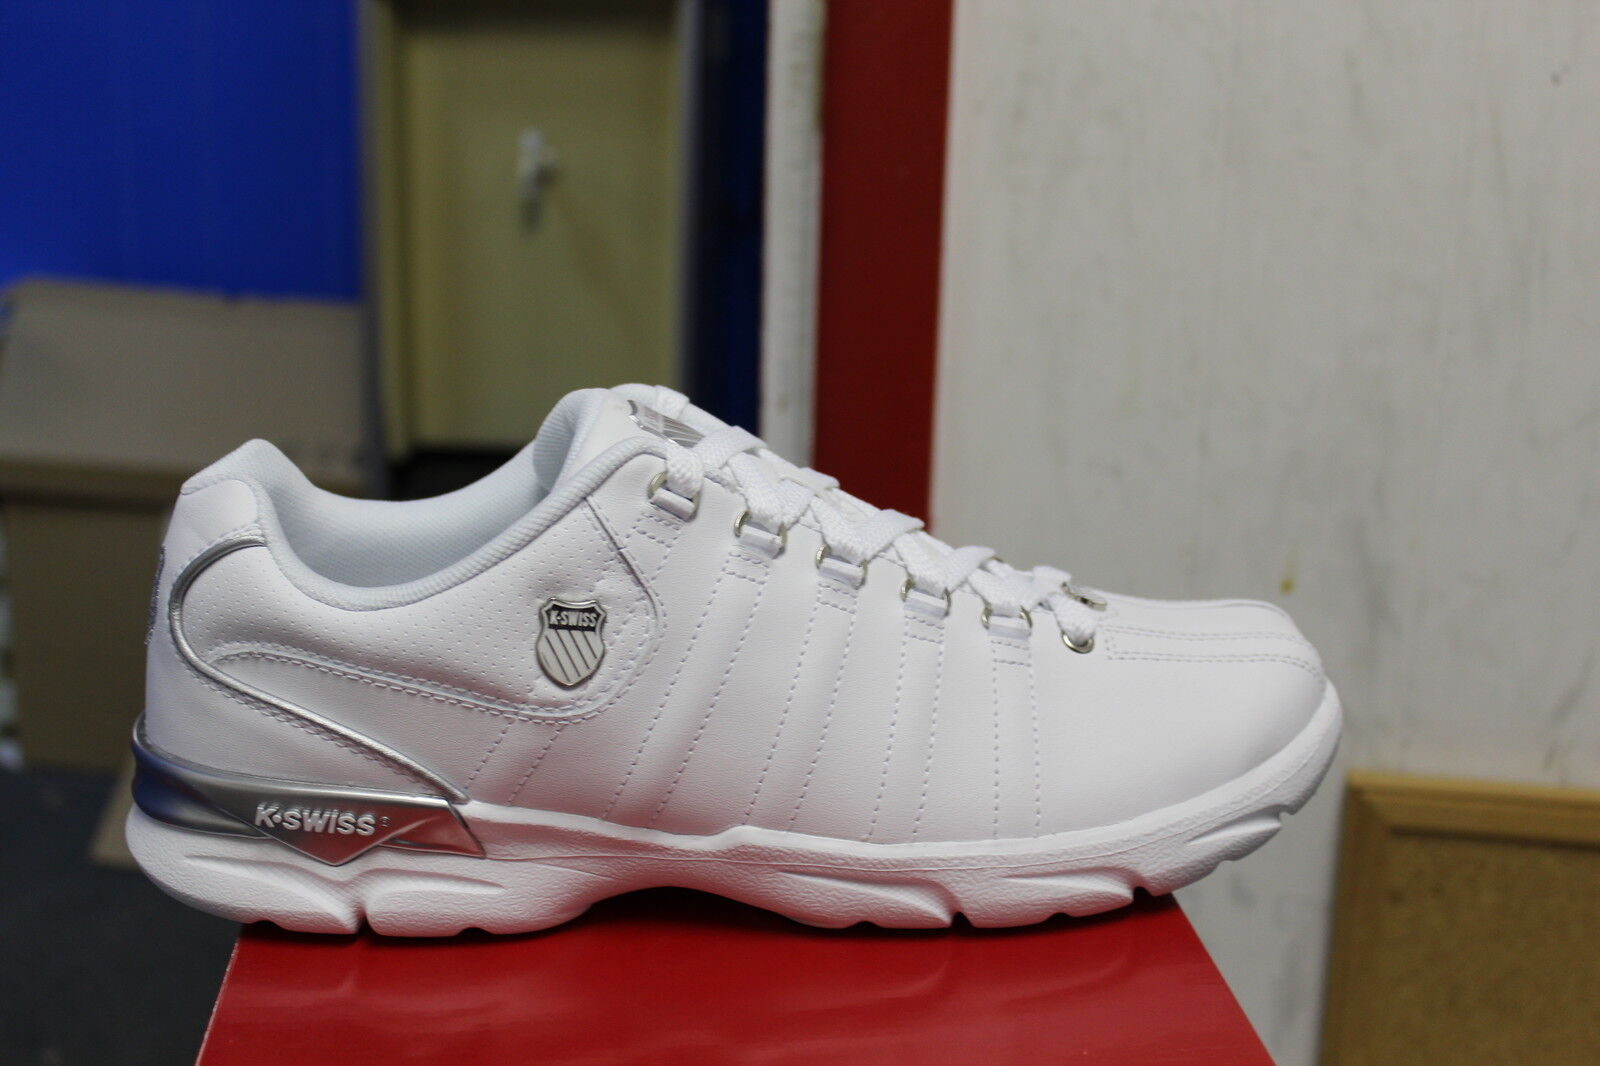 K-Swiss Men's Andrus Low Size 10.5 White Silver Brand New In Box Sneakers